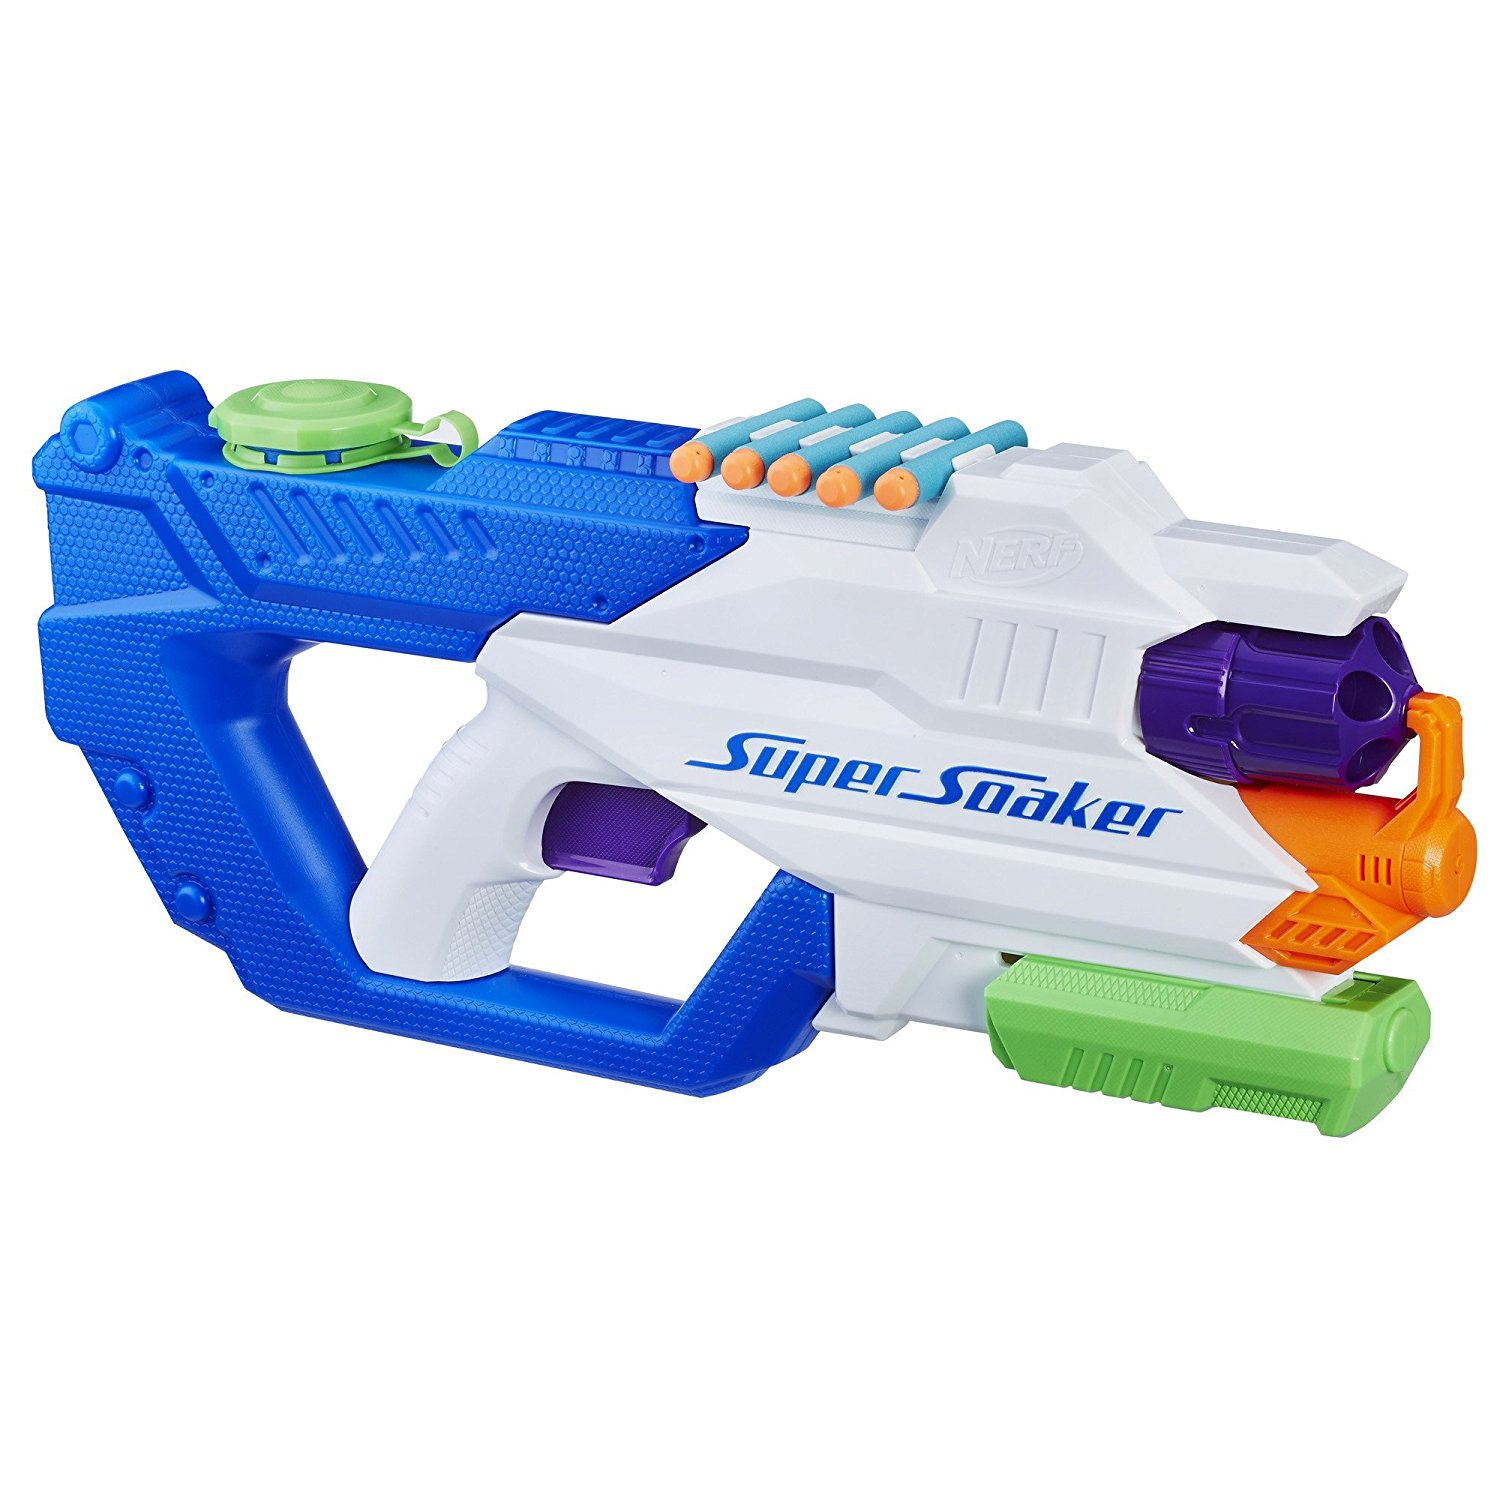 Nerf Supersoaker DartFire-kids toys, outdoor toys, water toys, nerf toys, girls toys